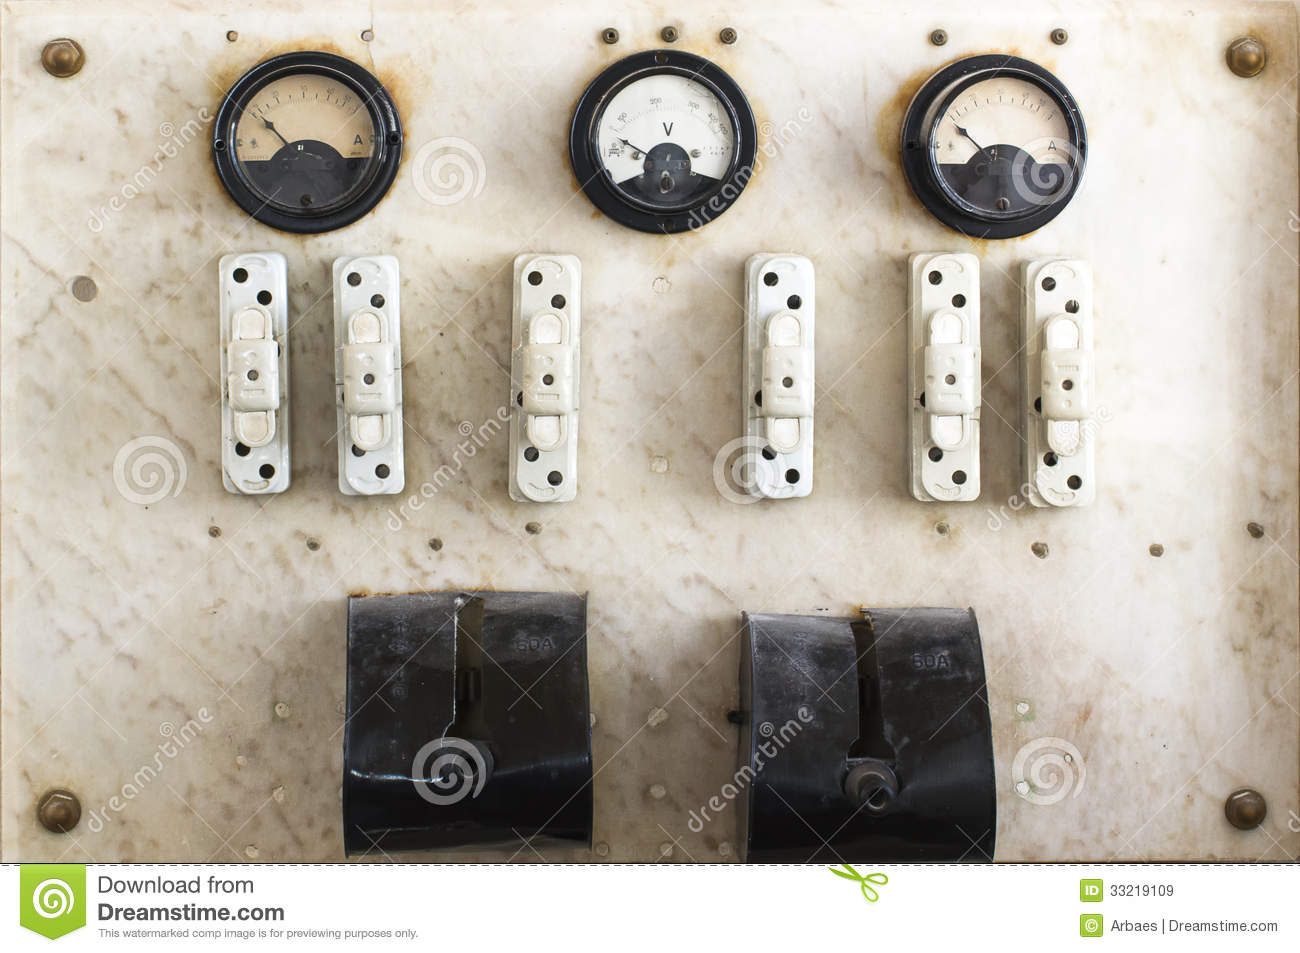 Fuse box and switch